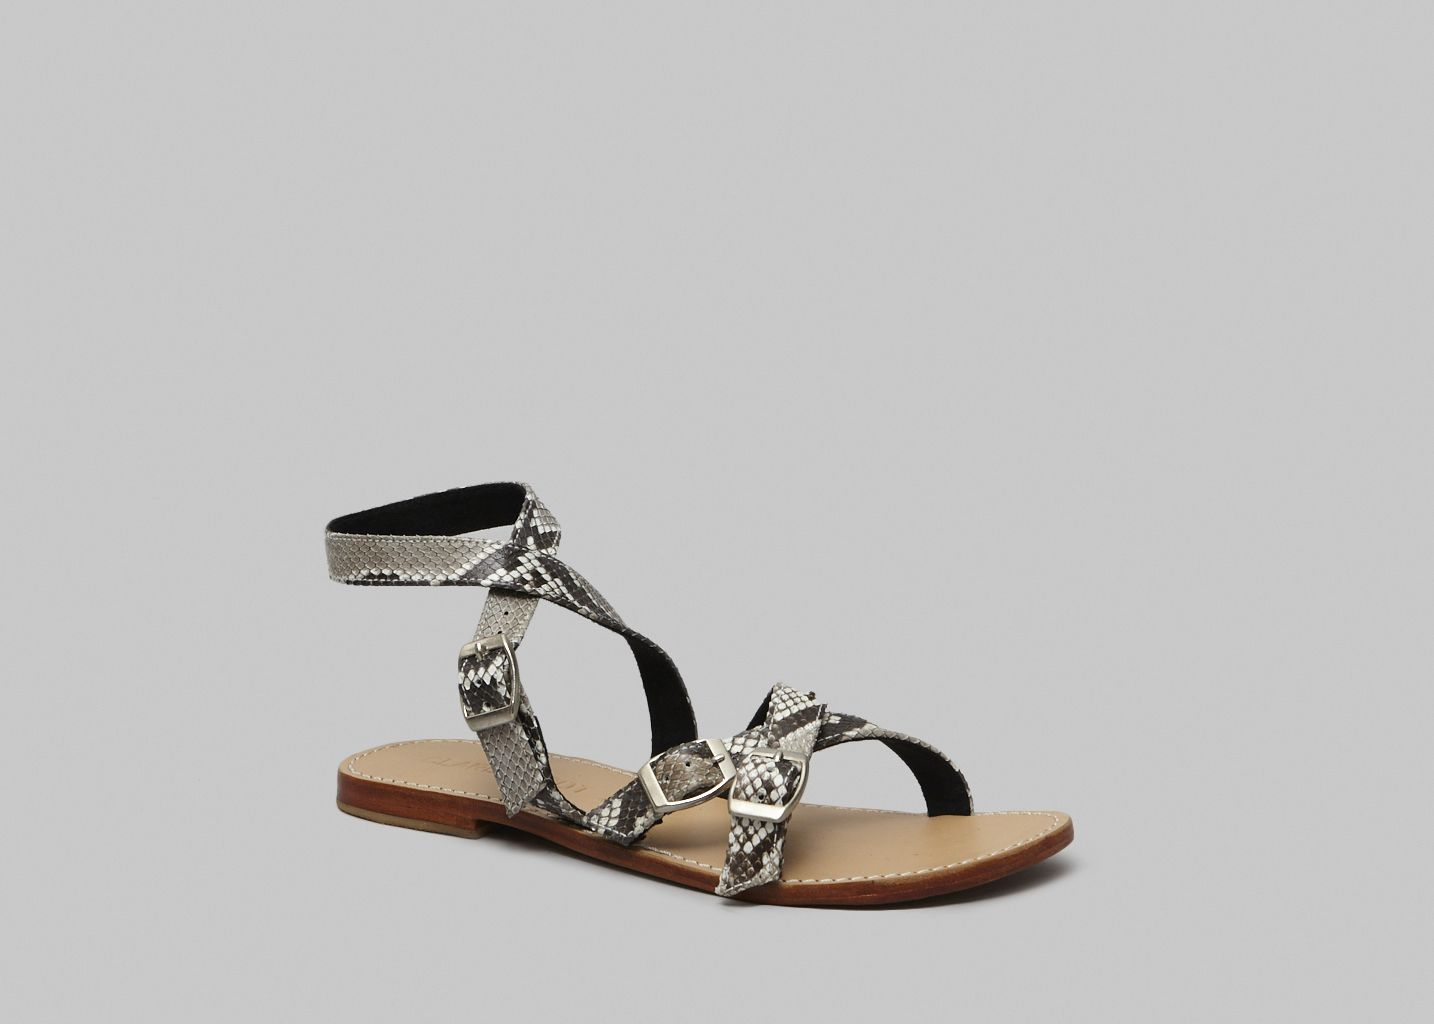 Fanny Sandals - Claris Virot